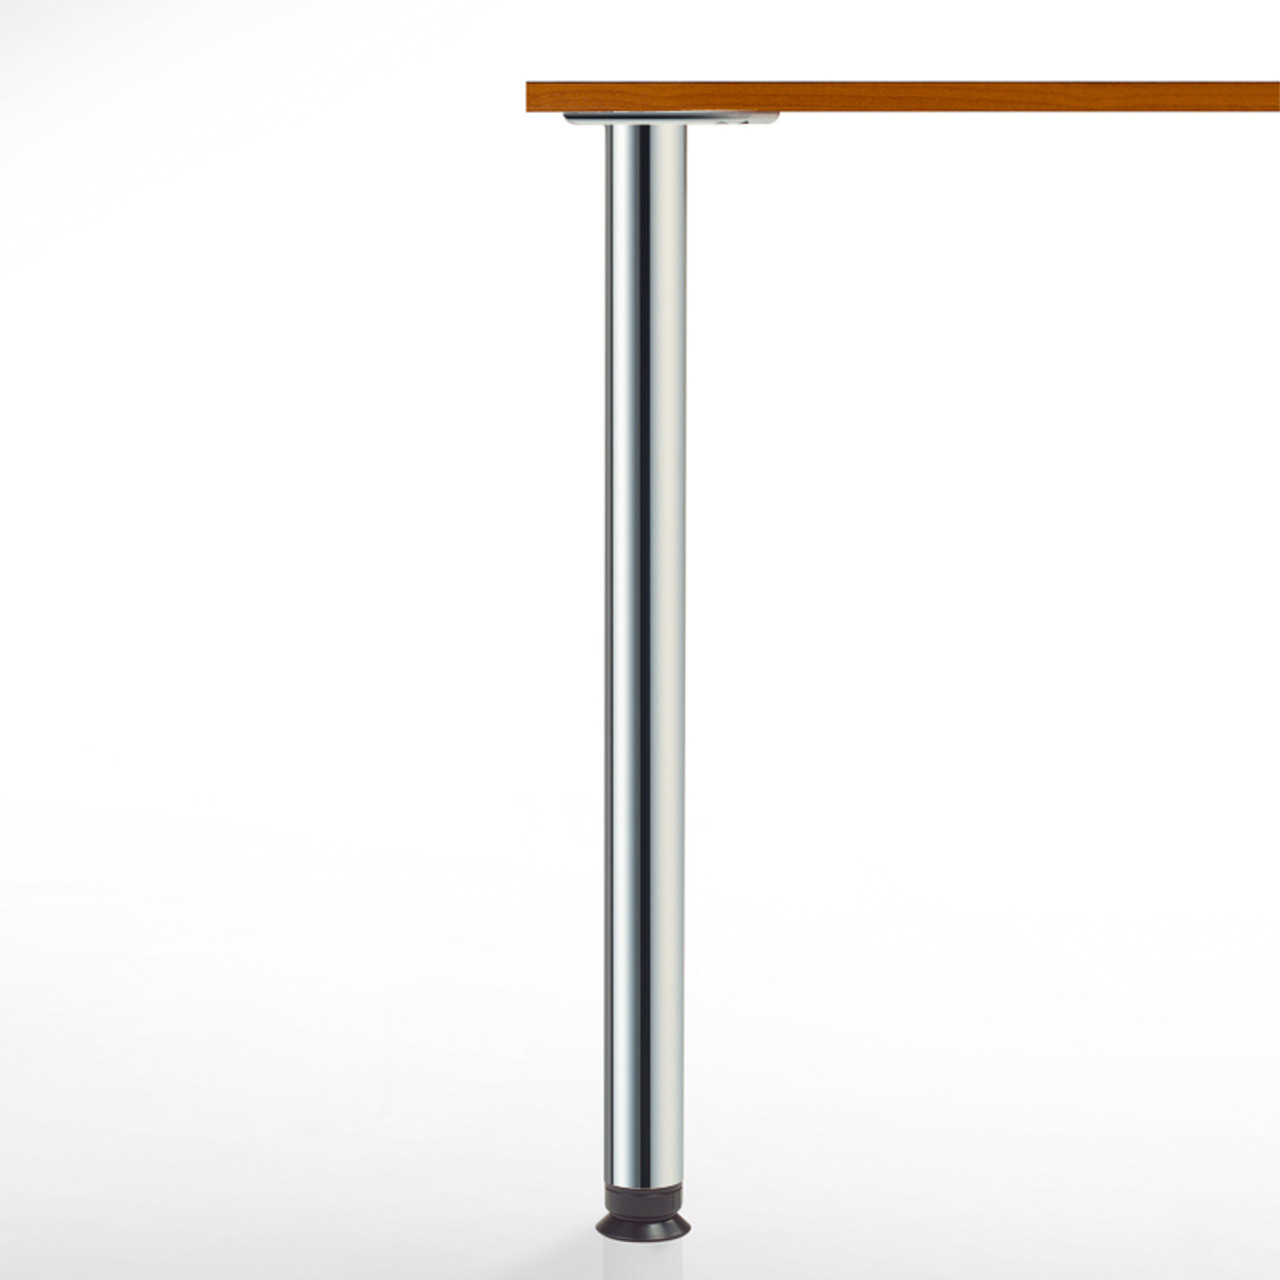 Zoom Table Leg, 27-3/4'',  2-3/8'' diameter leg 4'' adjustable foot - replacementtablelegs.com